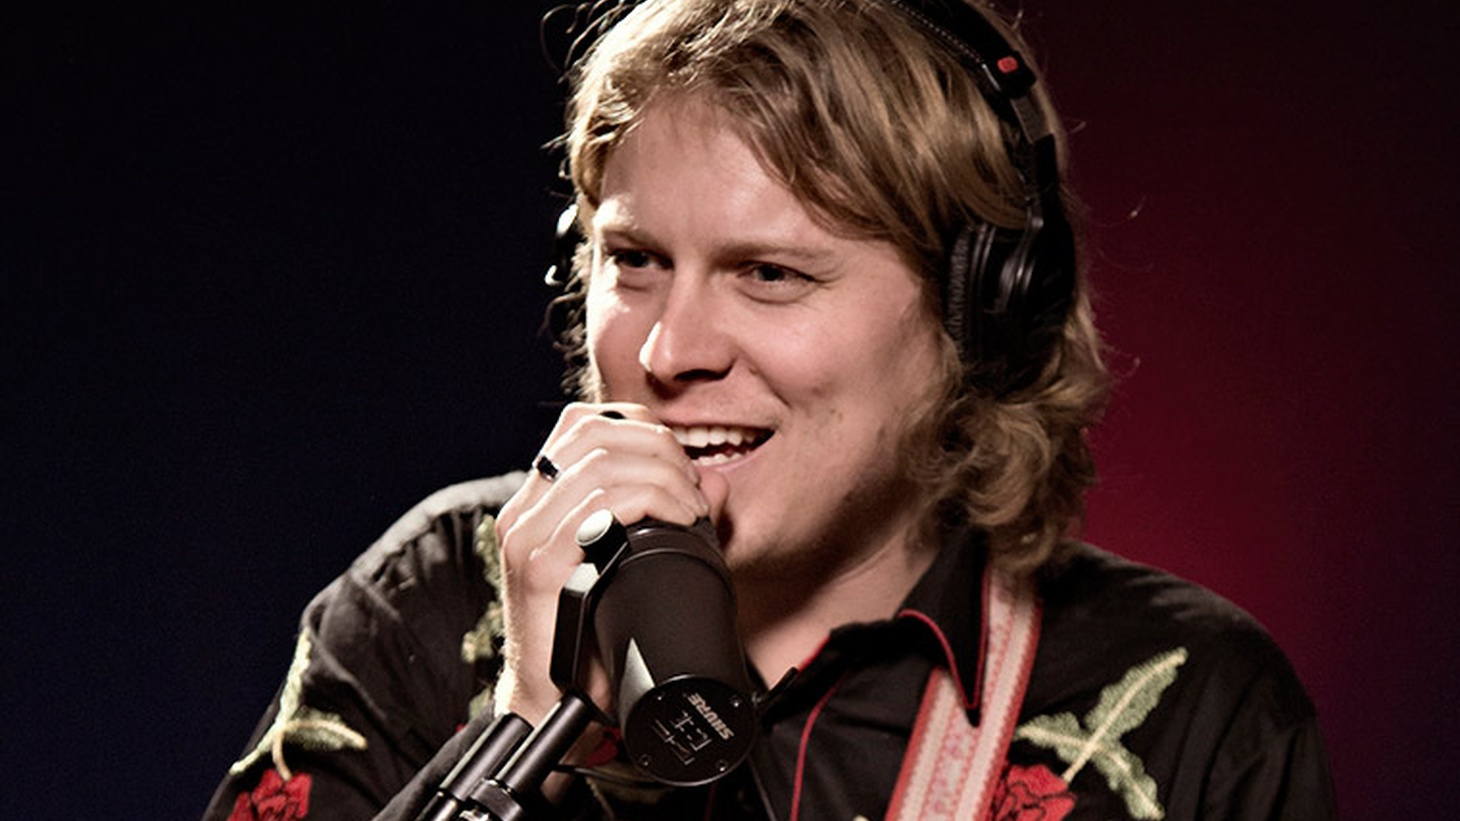 If you've seen Ty Segall in concert during the last year, you would have heard him play My Lady's on Fire.